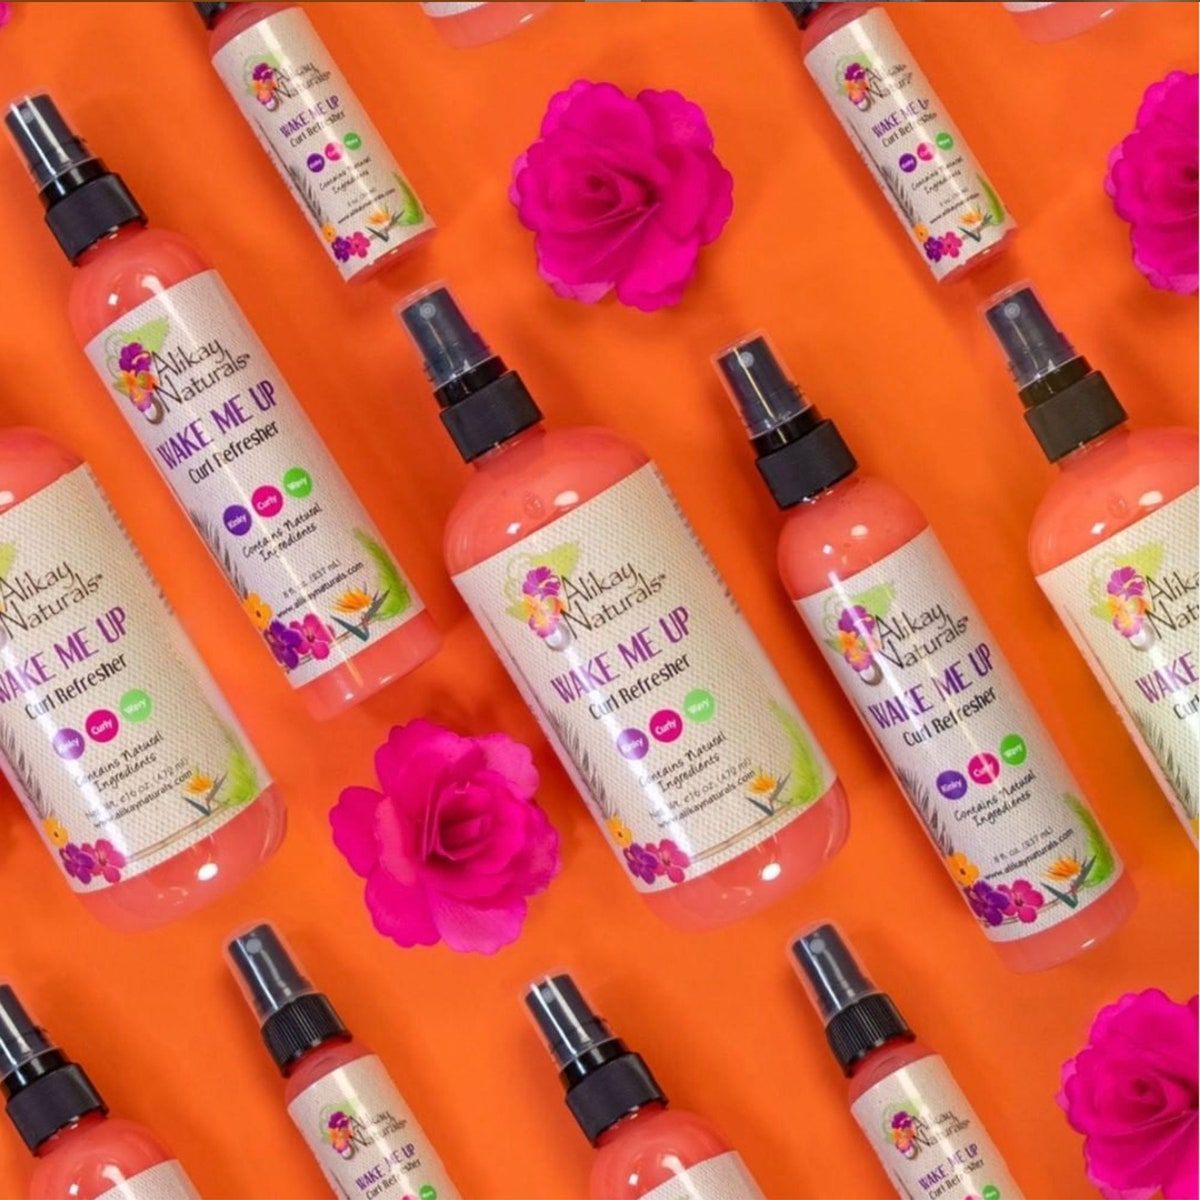 27 BlackOwned HairCare Brands You May Not Have Heard